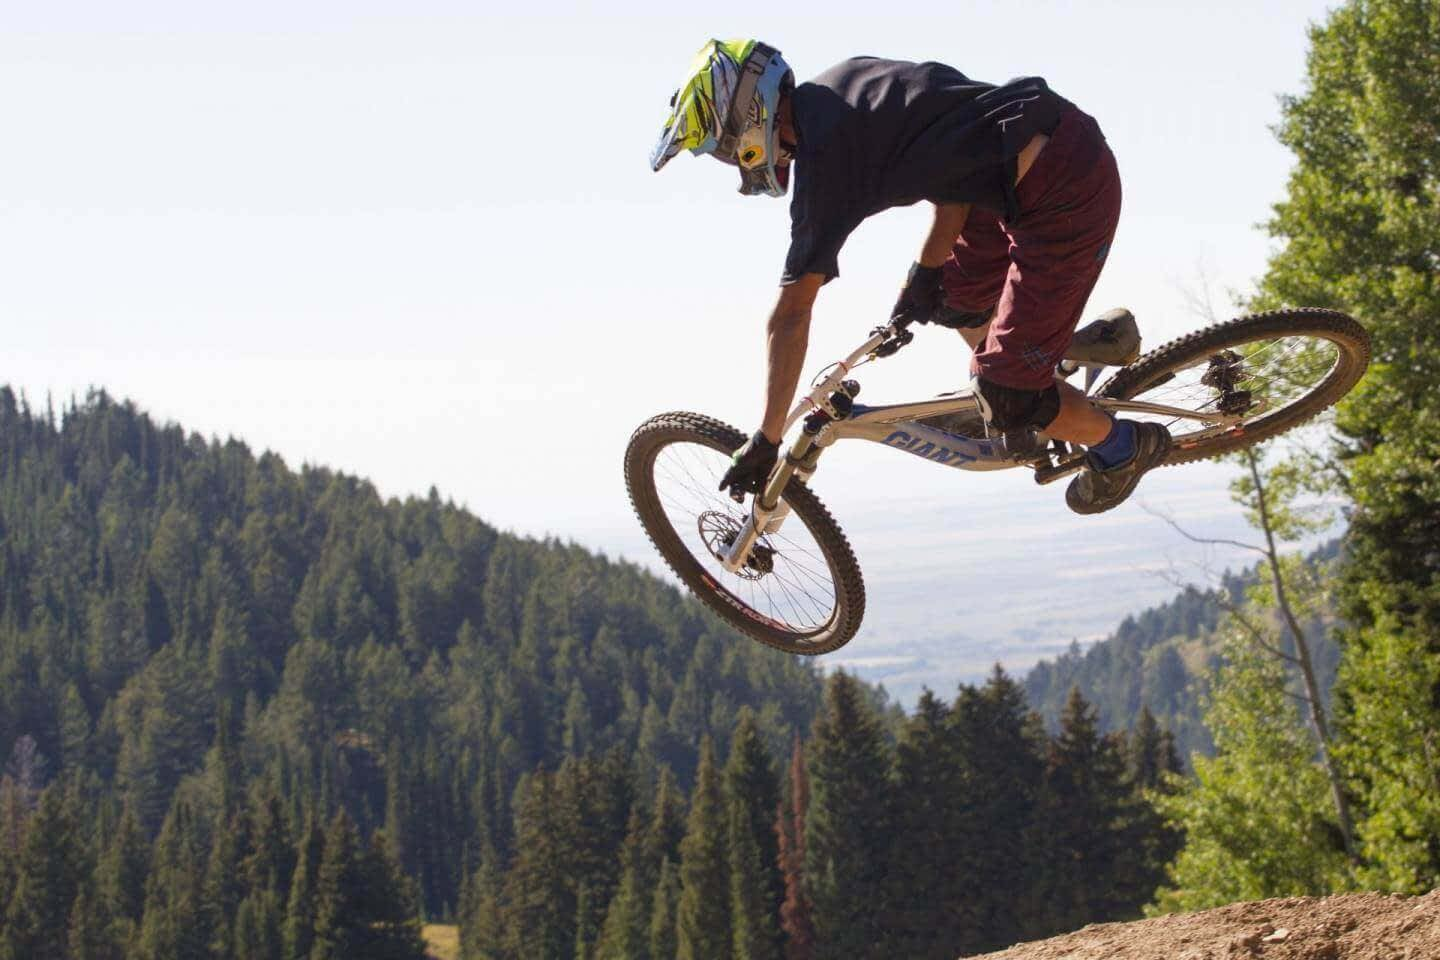 Wydaho Rendezvous Wall Ride Tabletop Gap Jump